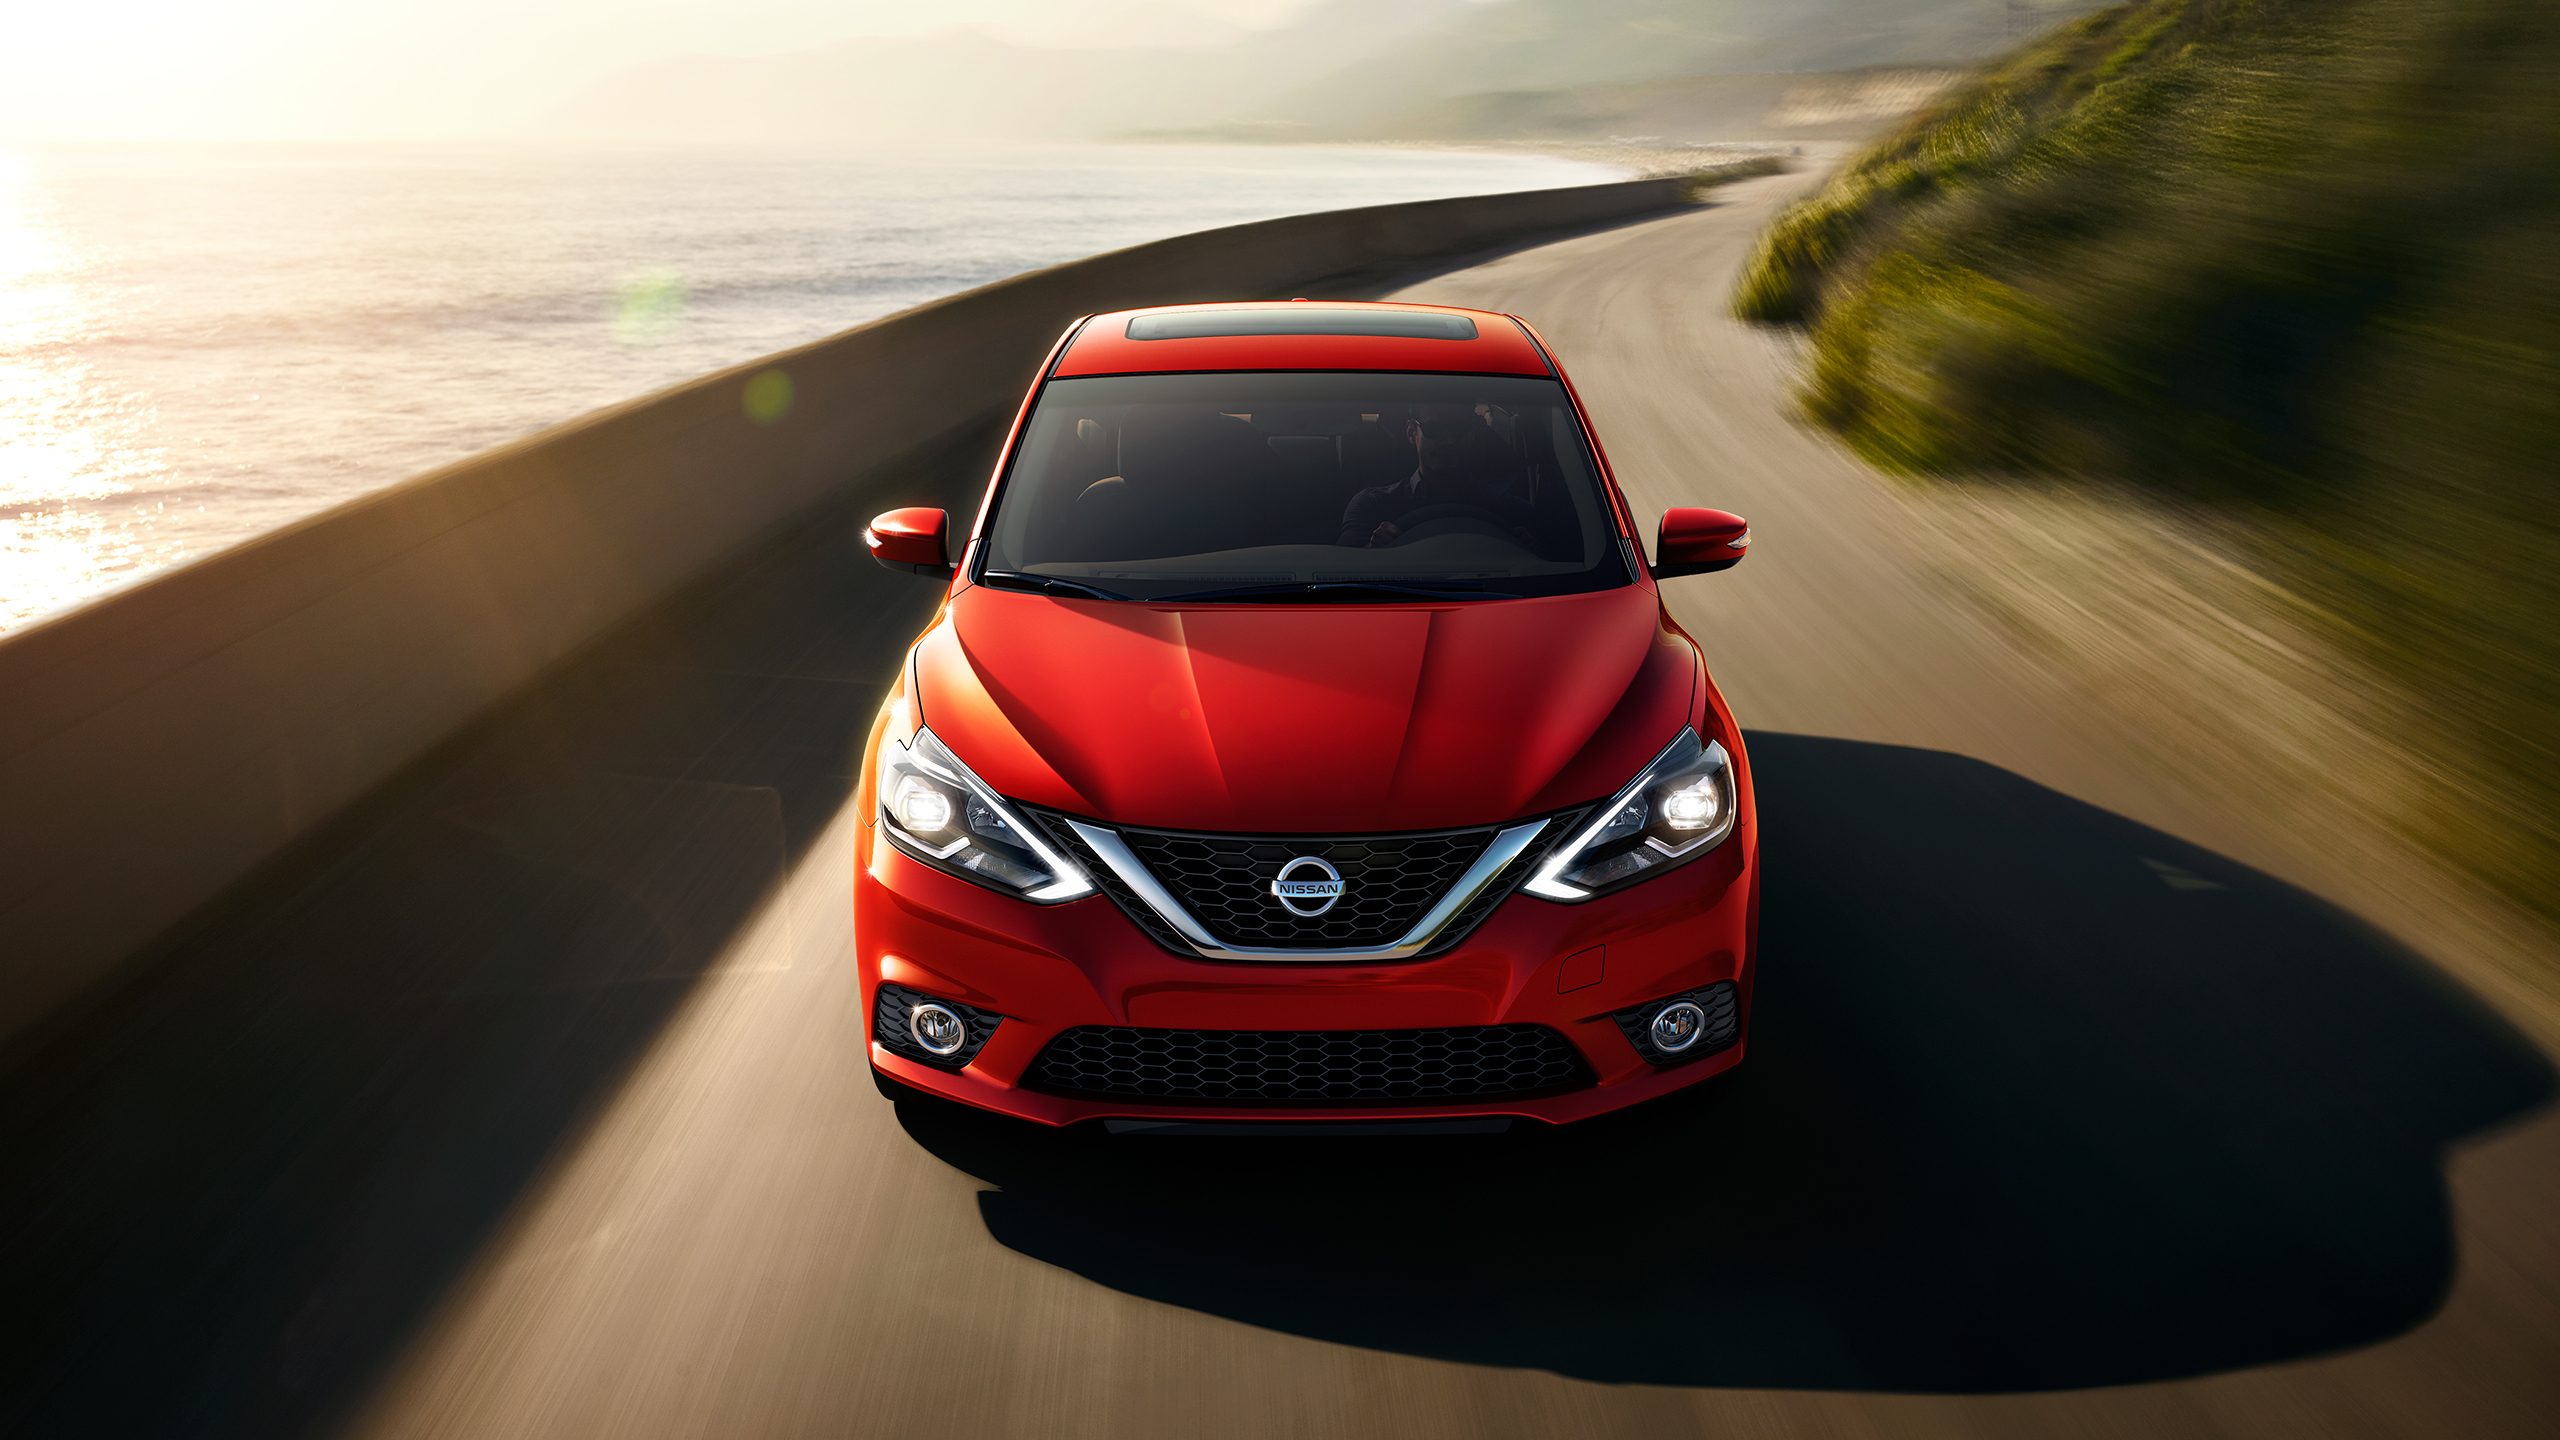 2016 Nissan Sentra Red Exterior Face